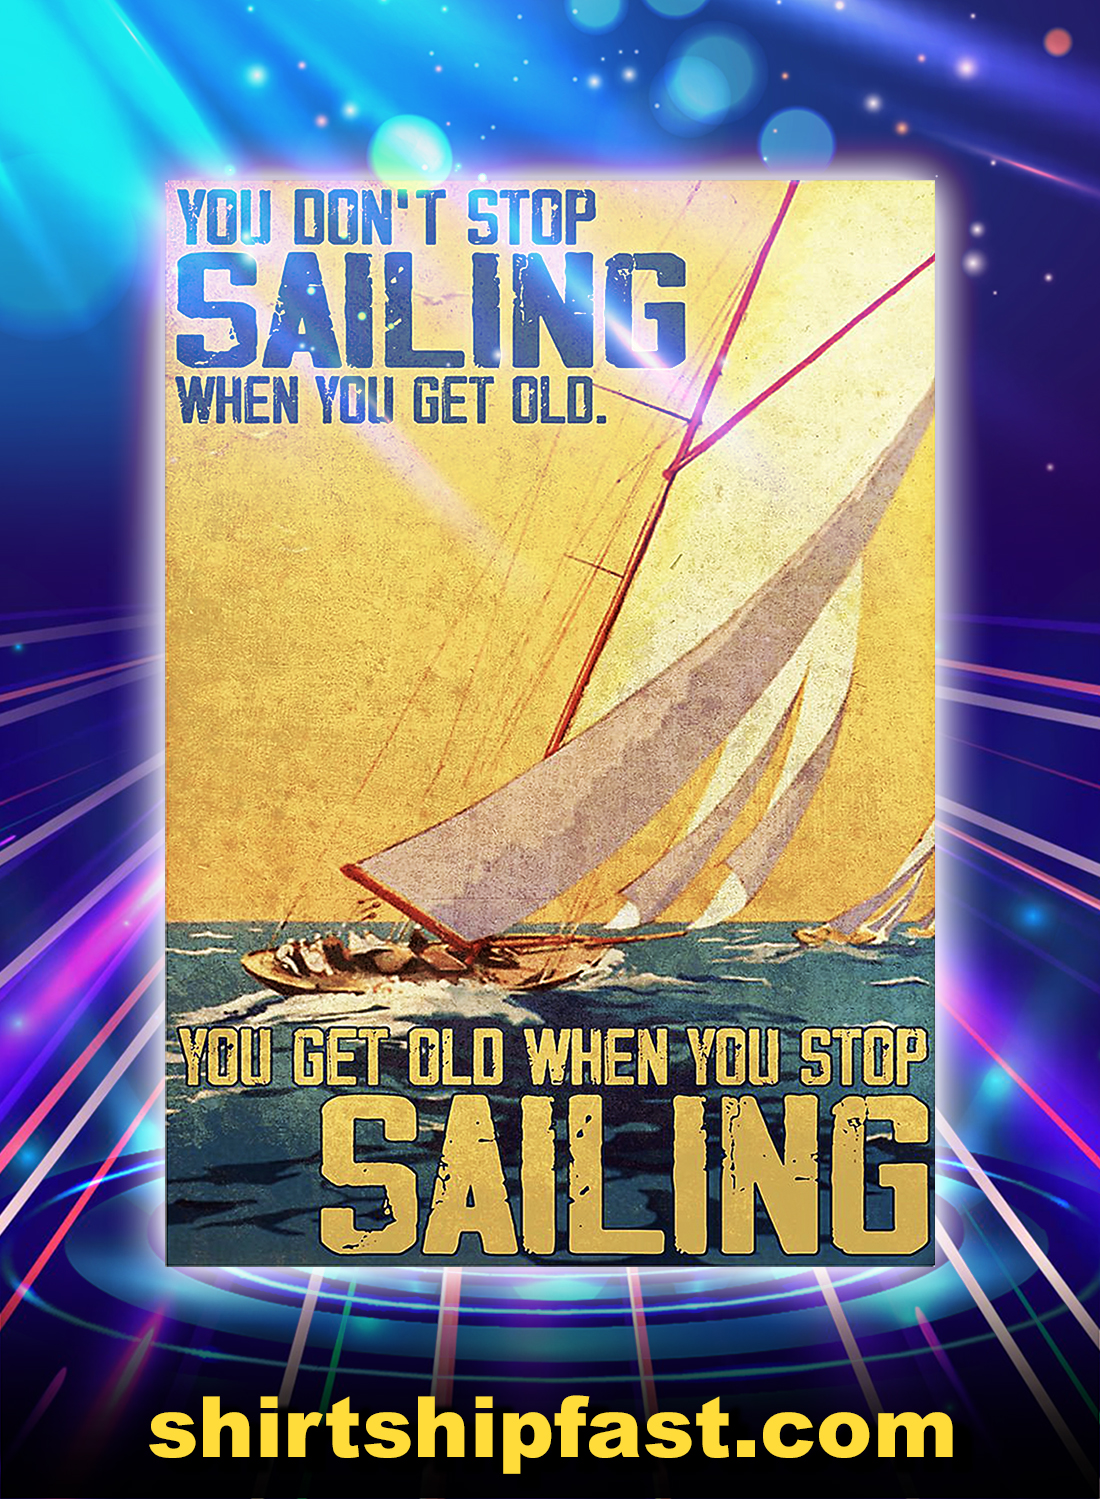 You don't stop sailing when you get old you get old when you stop sailing poster